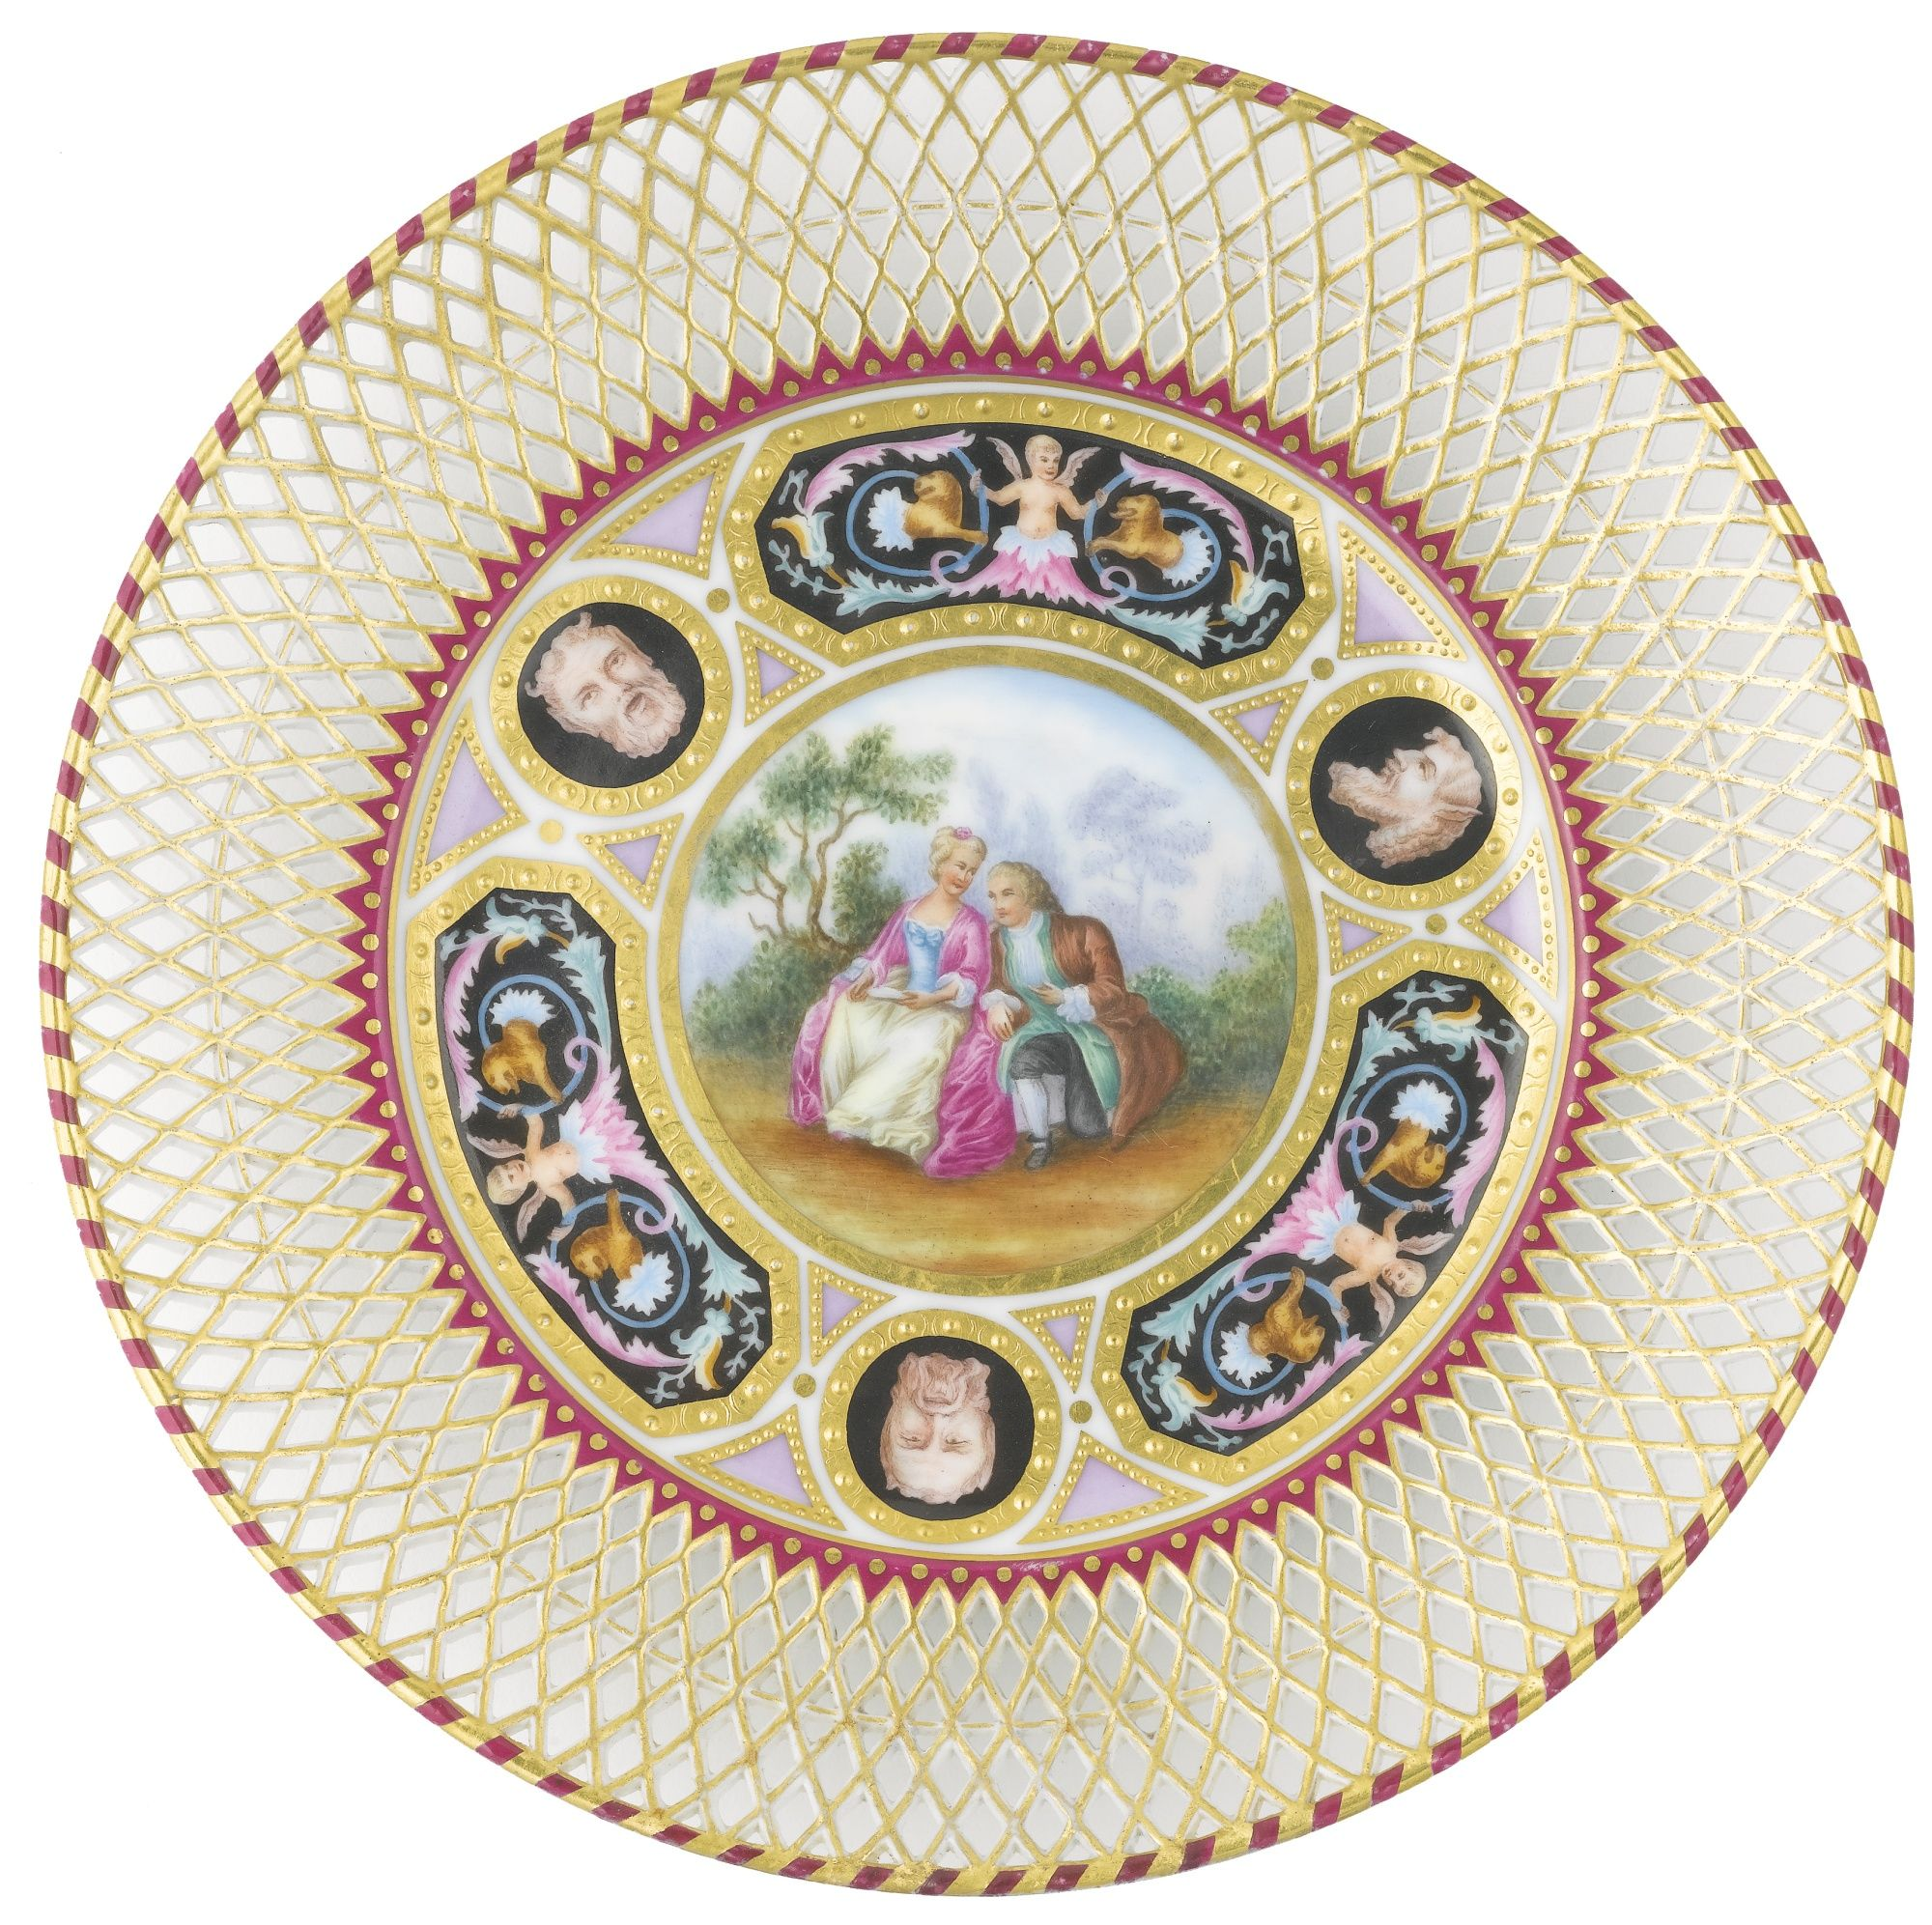 China Kitchen St Pete: A PORCELAIN CABINET PLATE, IMPERIAL PORCELAIN MANUFACTORY